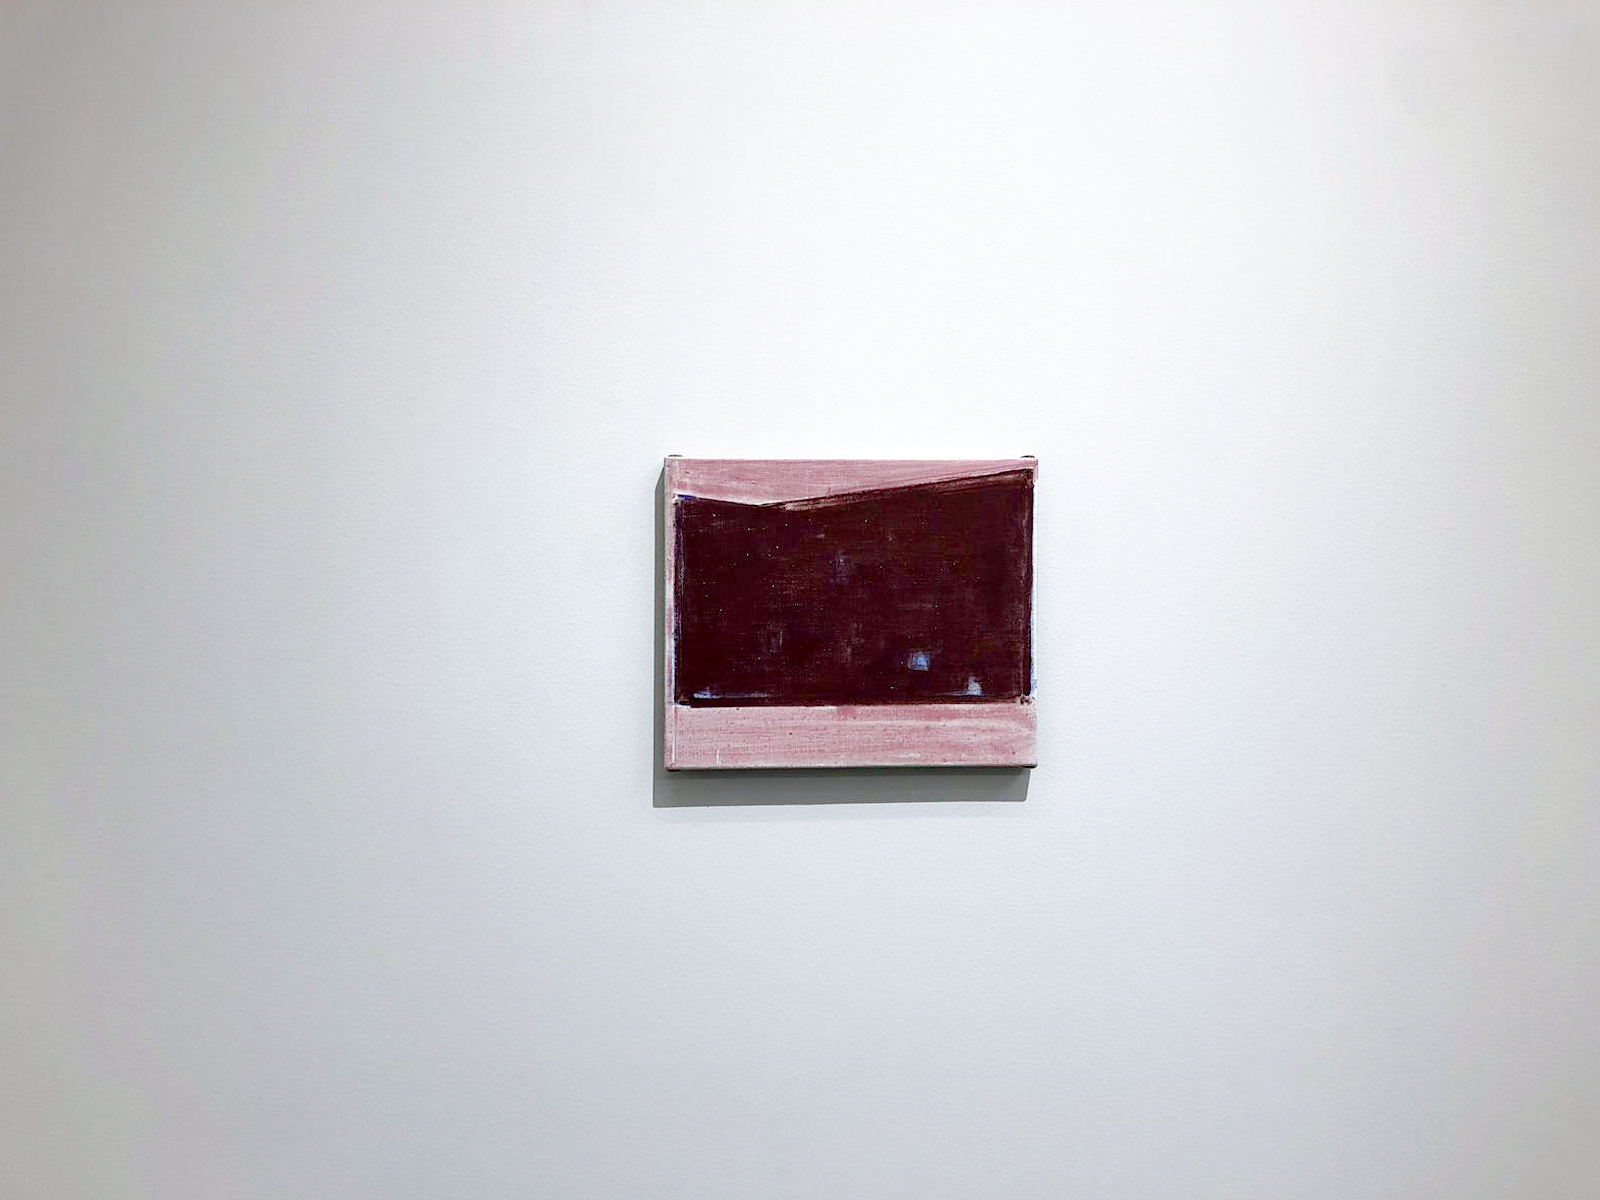 BERG Contemporary - solo show by John Zurier